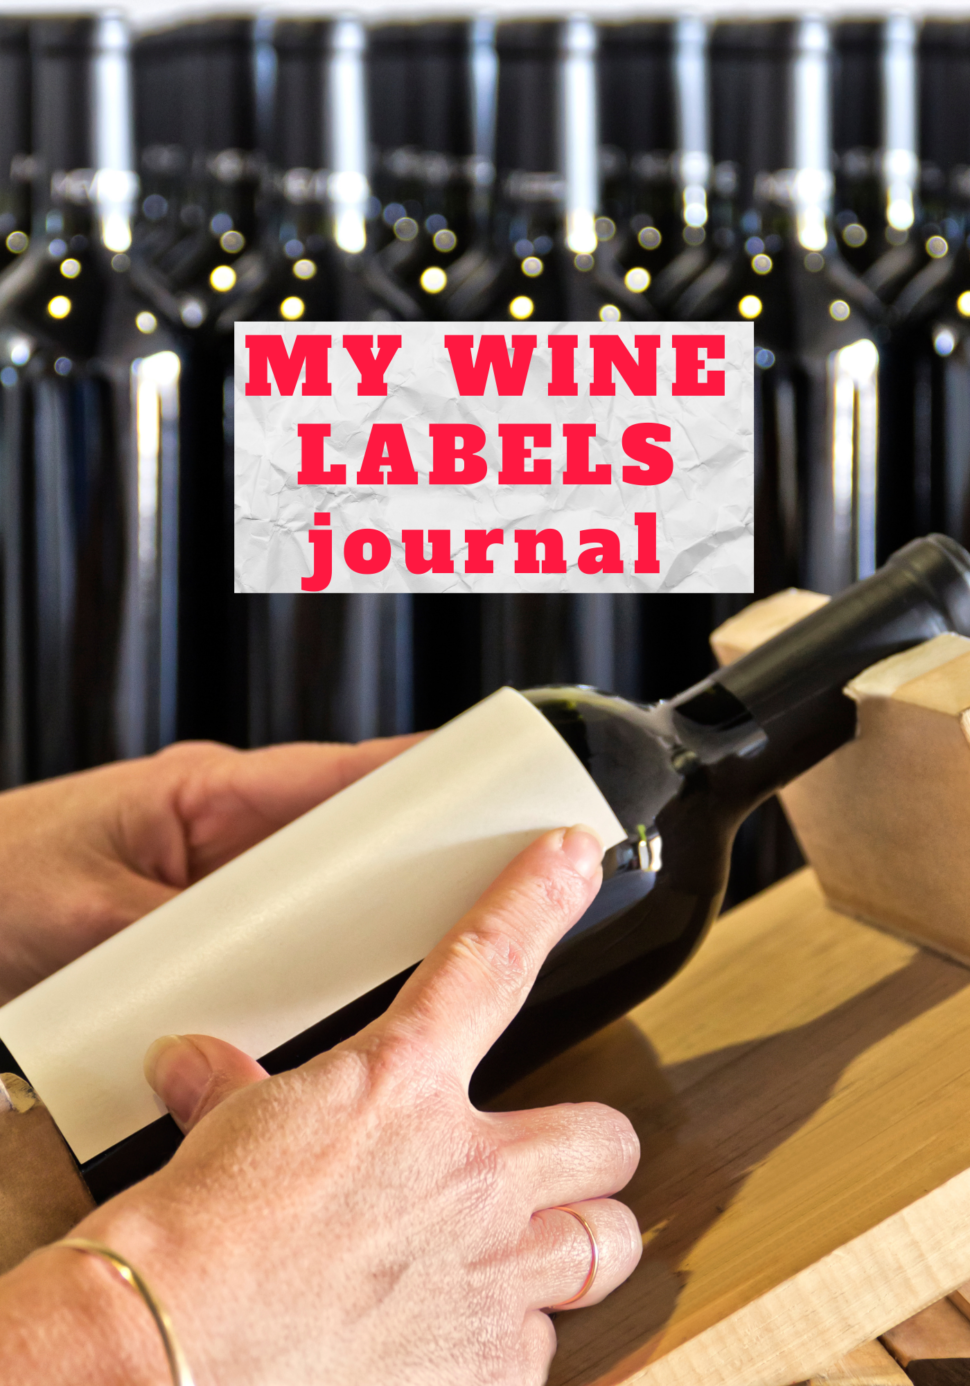 My wine labels journal